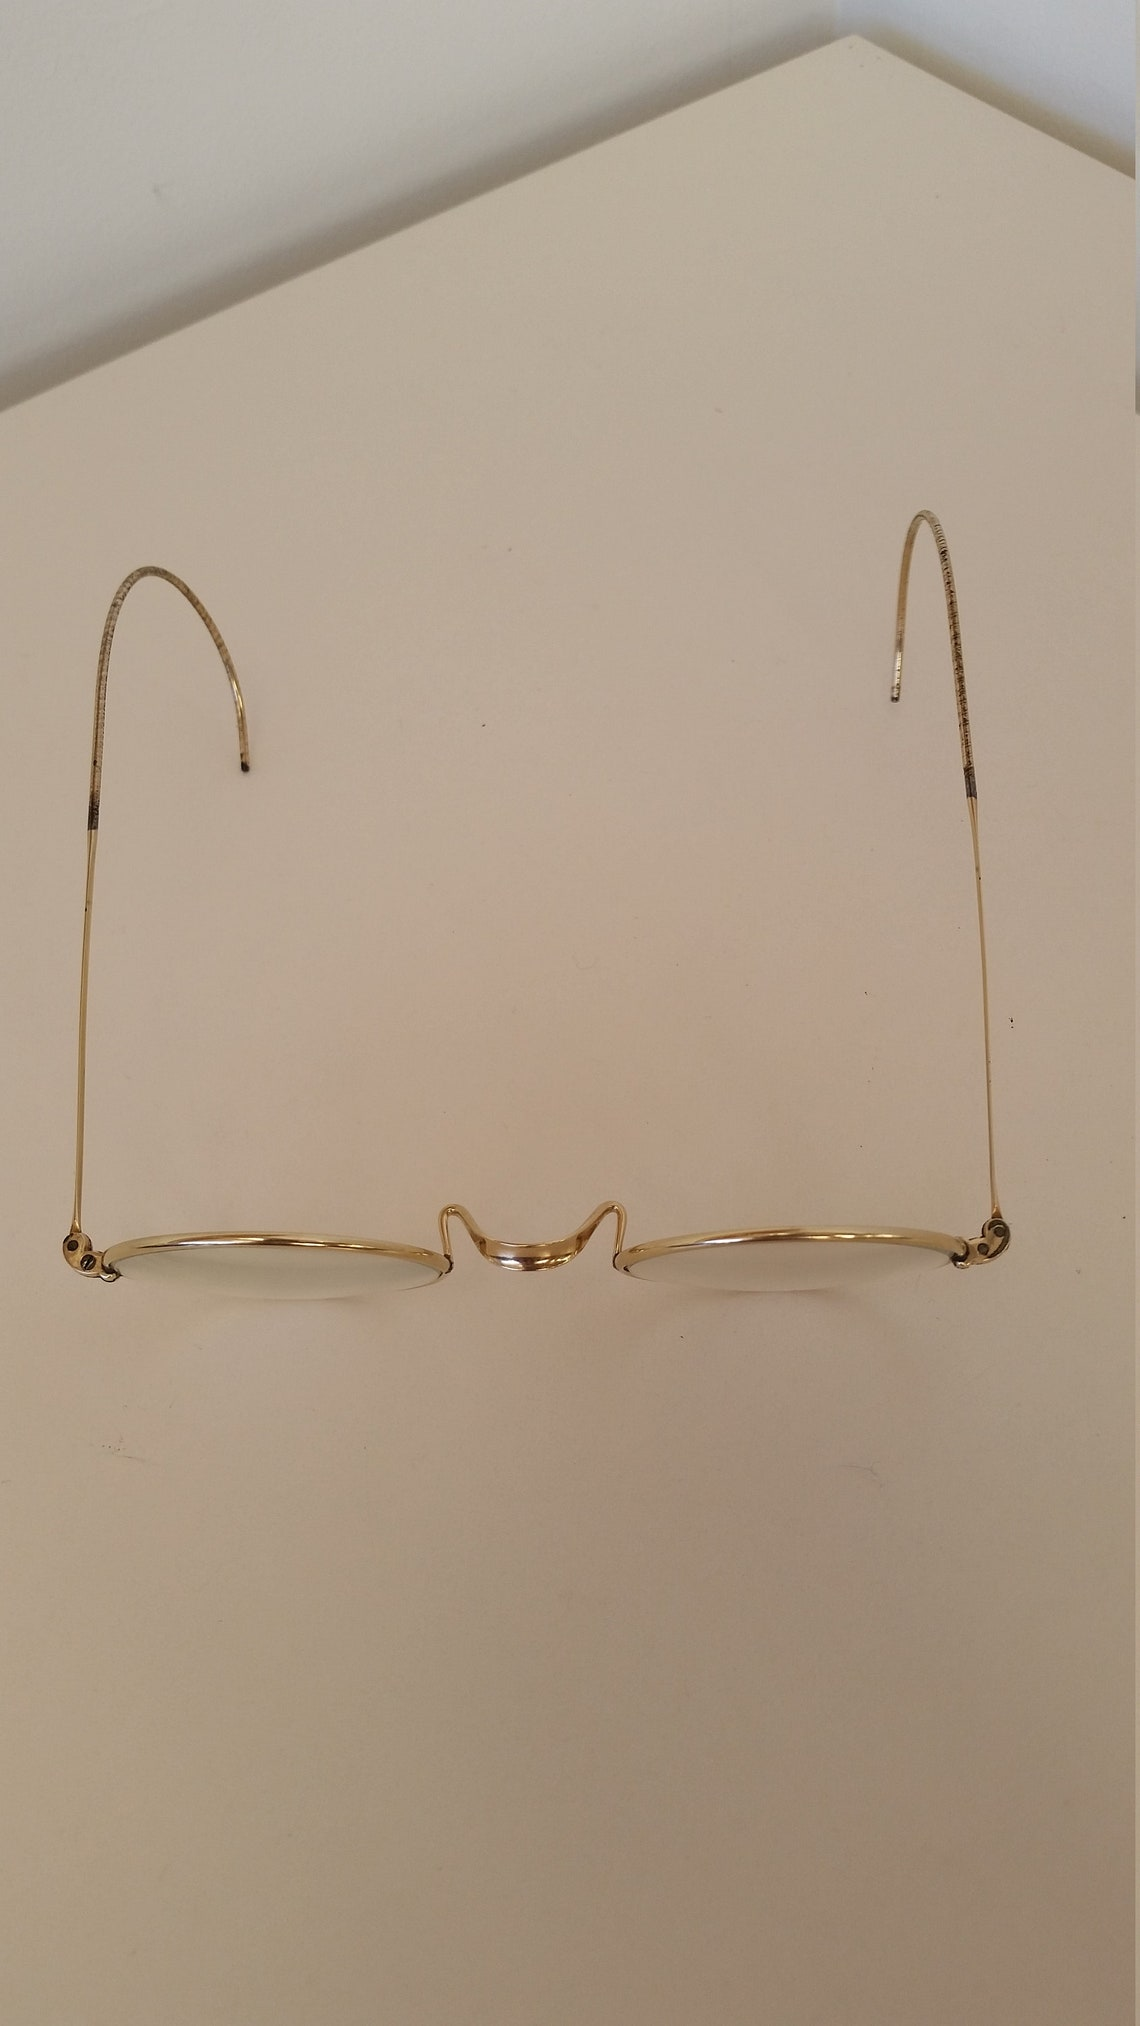 1920s Round Gold Eyeglasses; +0.75 Strength; Slight Magnification; Use as a Reader or Exchange Lenses; Rx-able; Excellent; Read Description